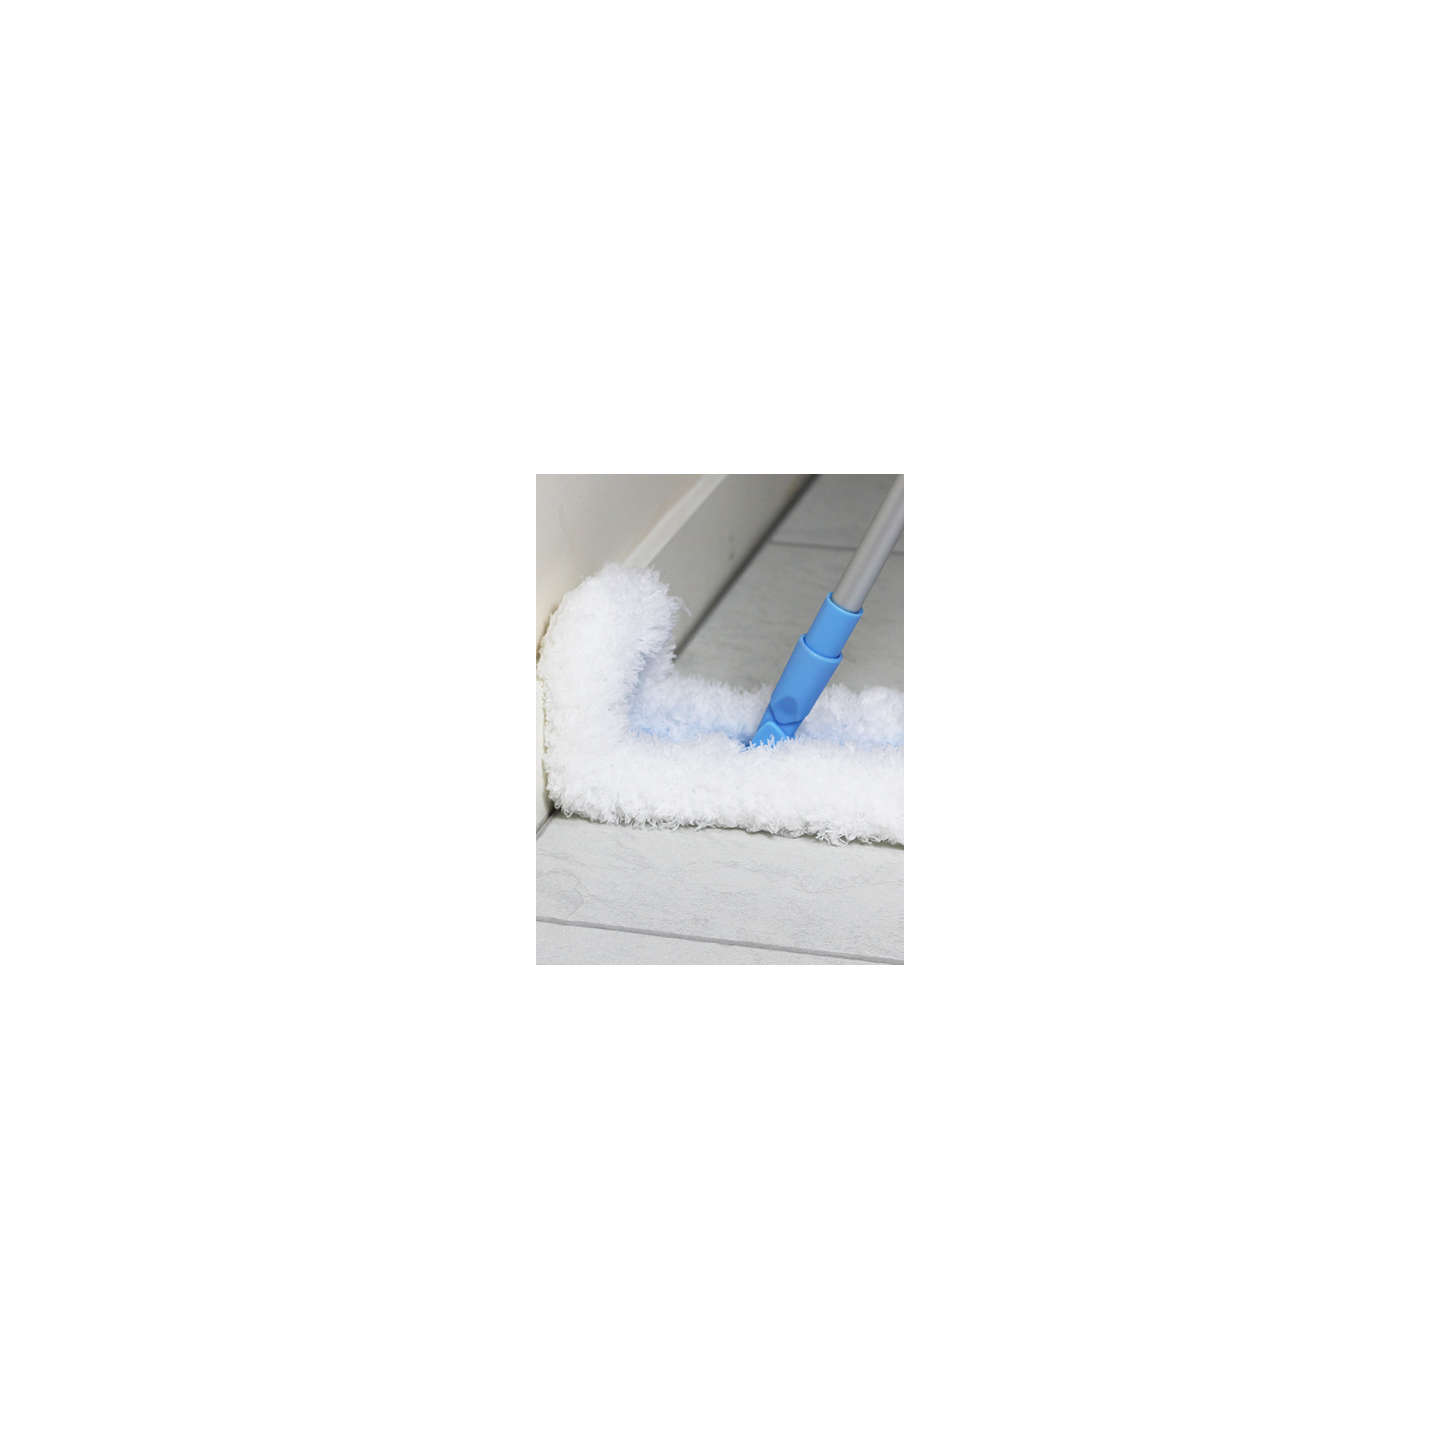 furniture duster. Buye-cloth Flexi Edge Floor And Wall Duster Online At Johnlewis.com Furniture